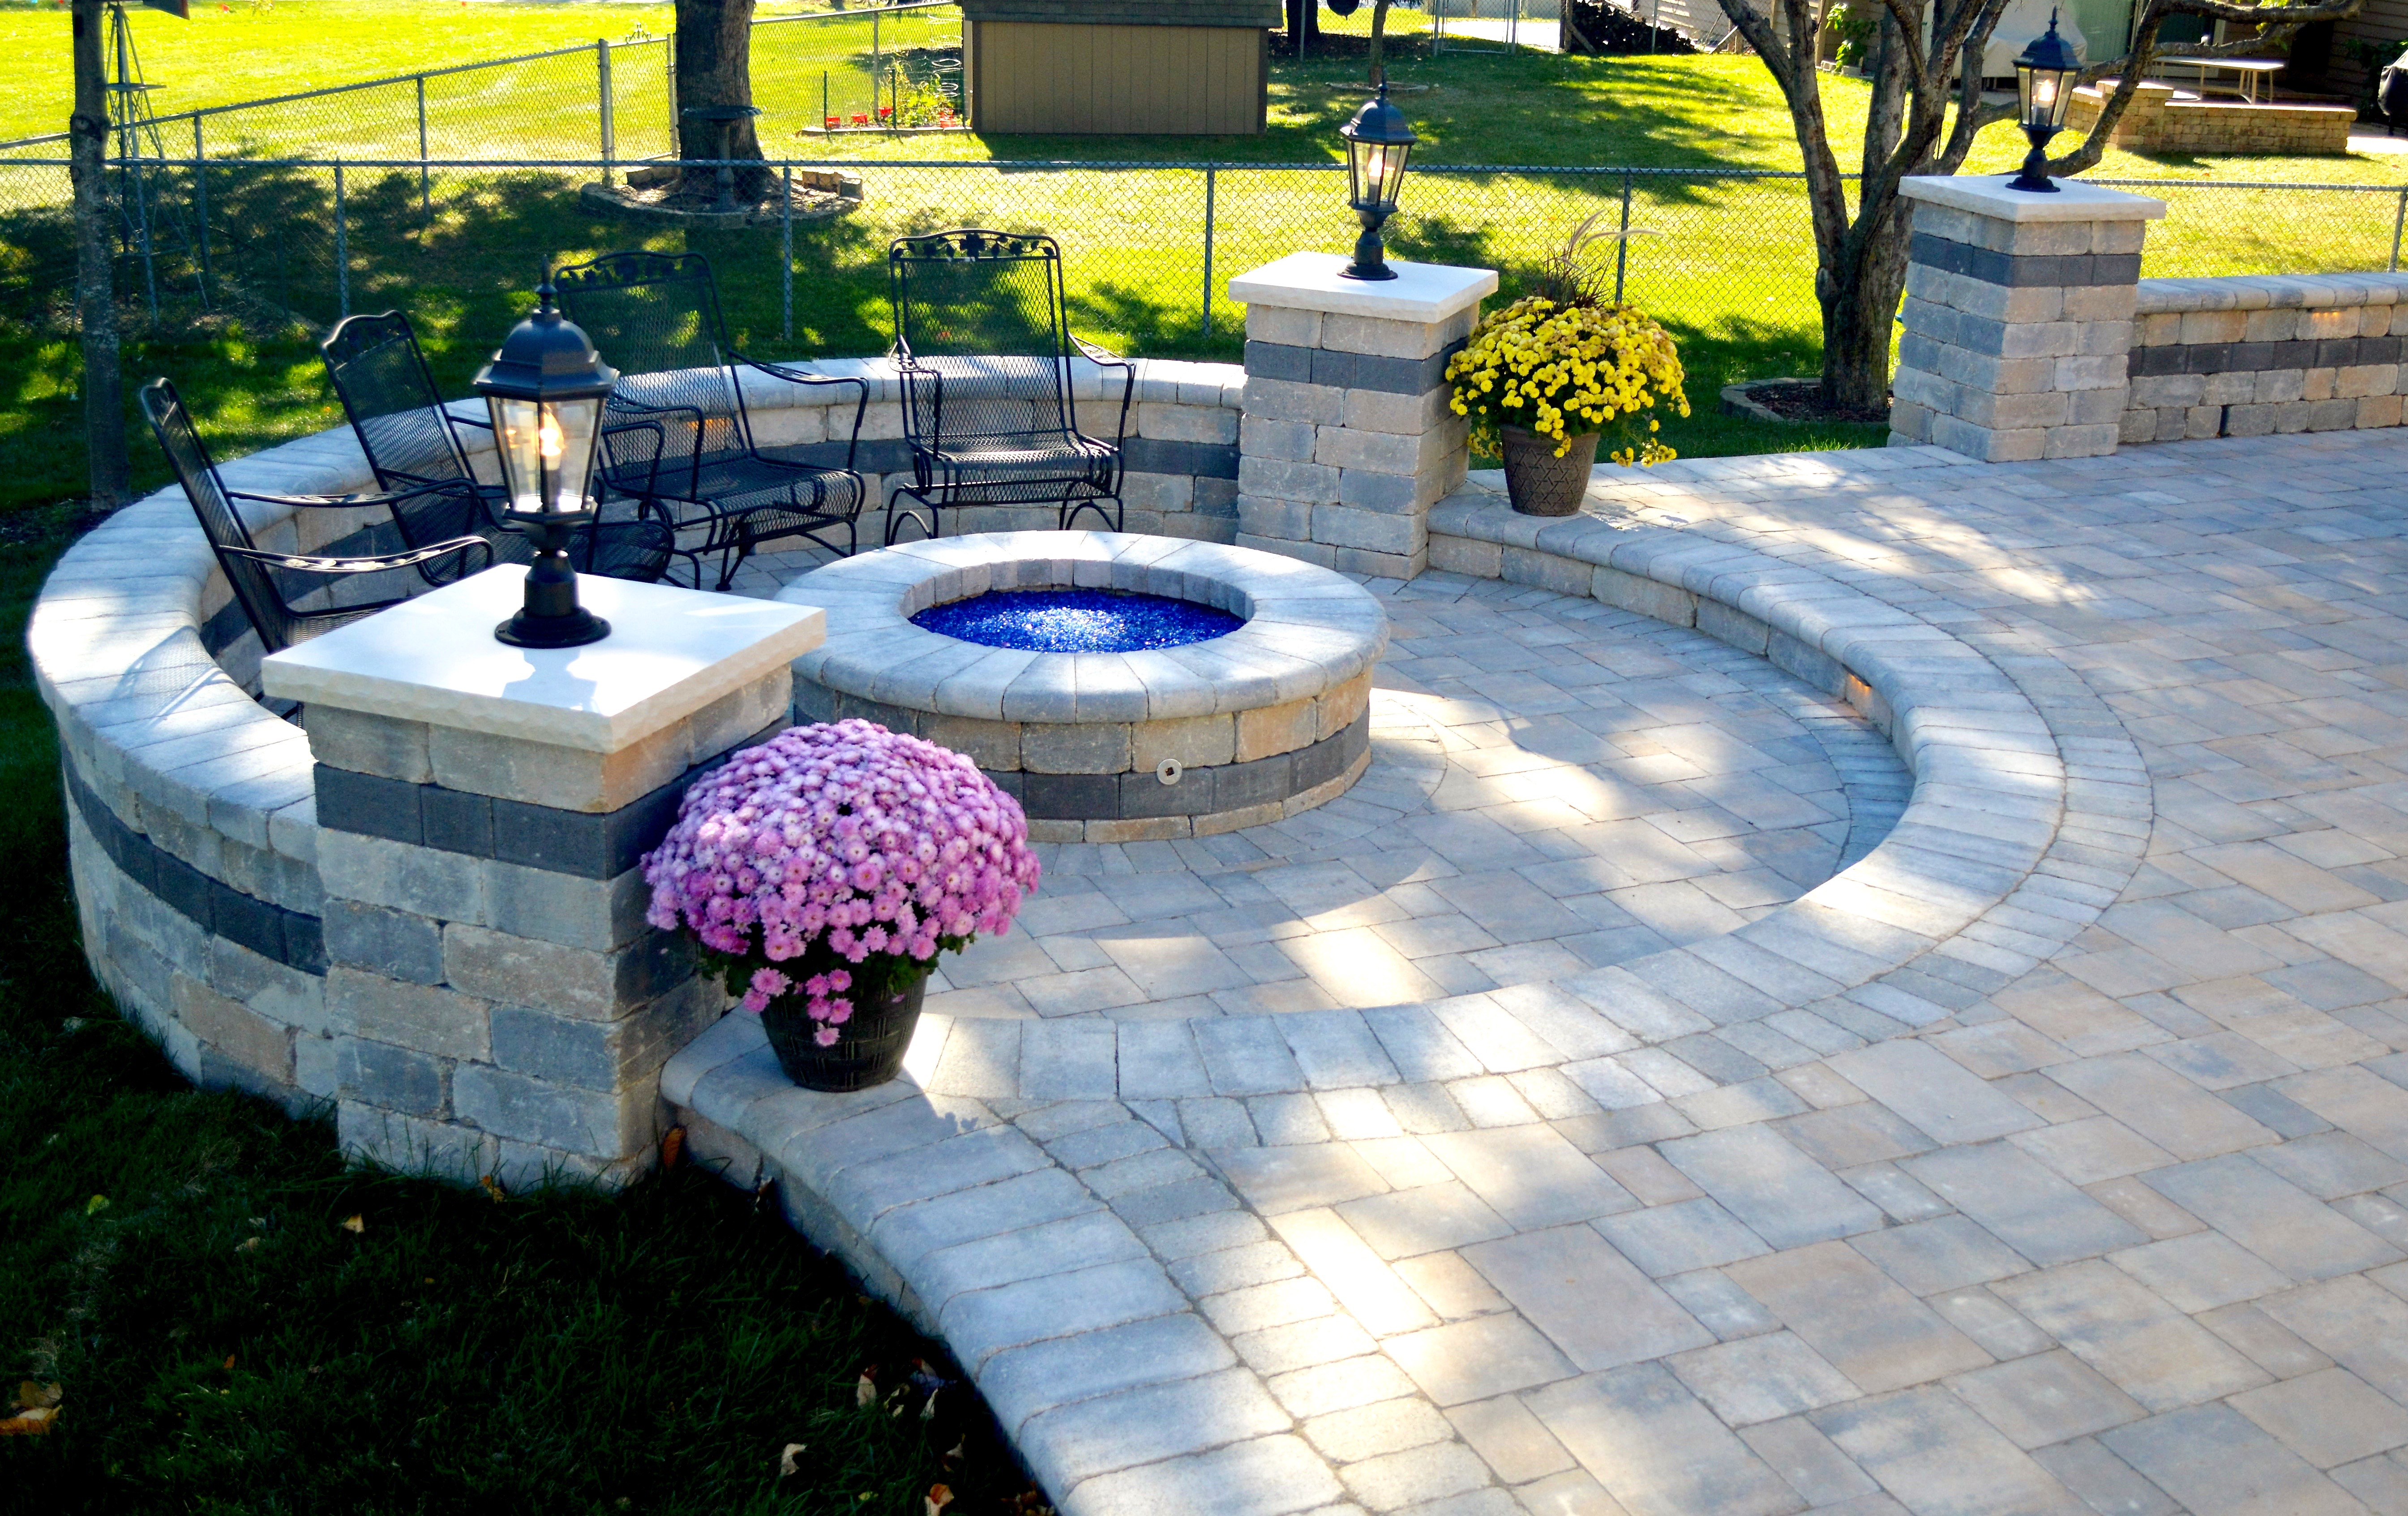 Let Us Create A Beautiful, Custom Designed, Expertly Built Patio For You  That Will Extend Your Homeu0027s Living Spaceu2026 And Its Value.